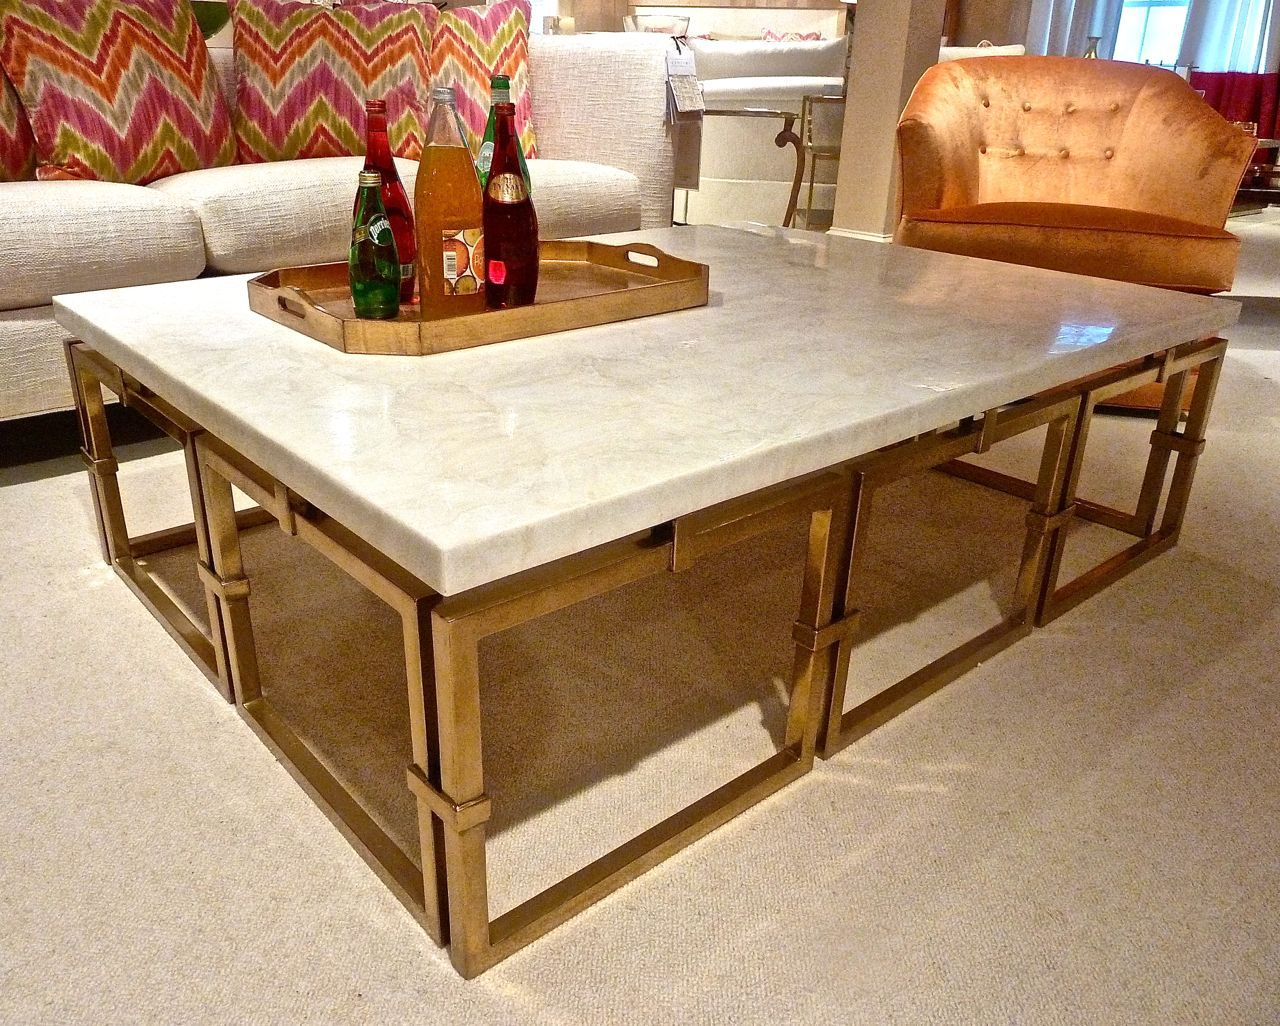 Phenomenal Marble Coffee Table Design Marble Coffee Table Marble Evergreenethics Interior Chair Design Evergreenethicsorg